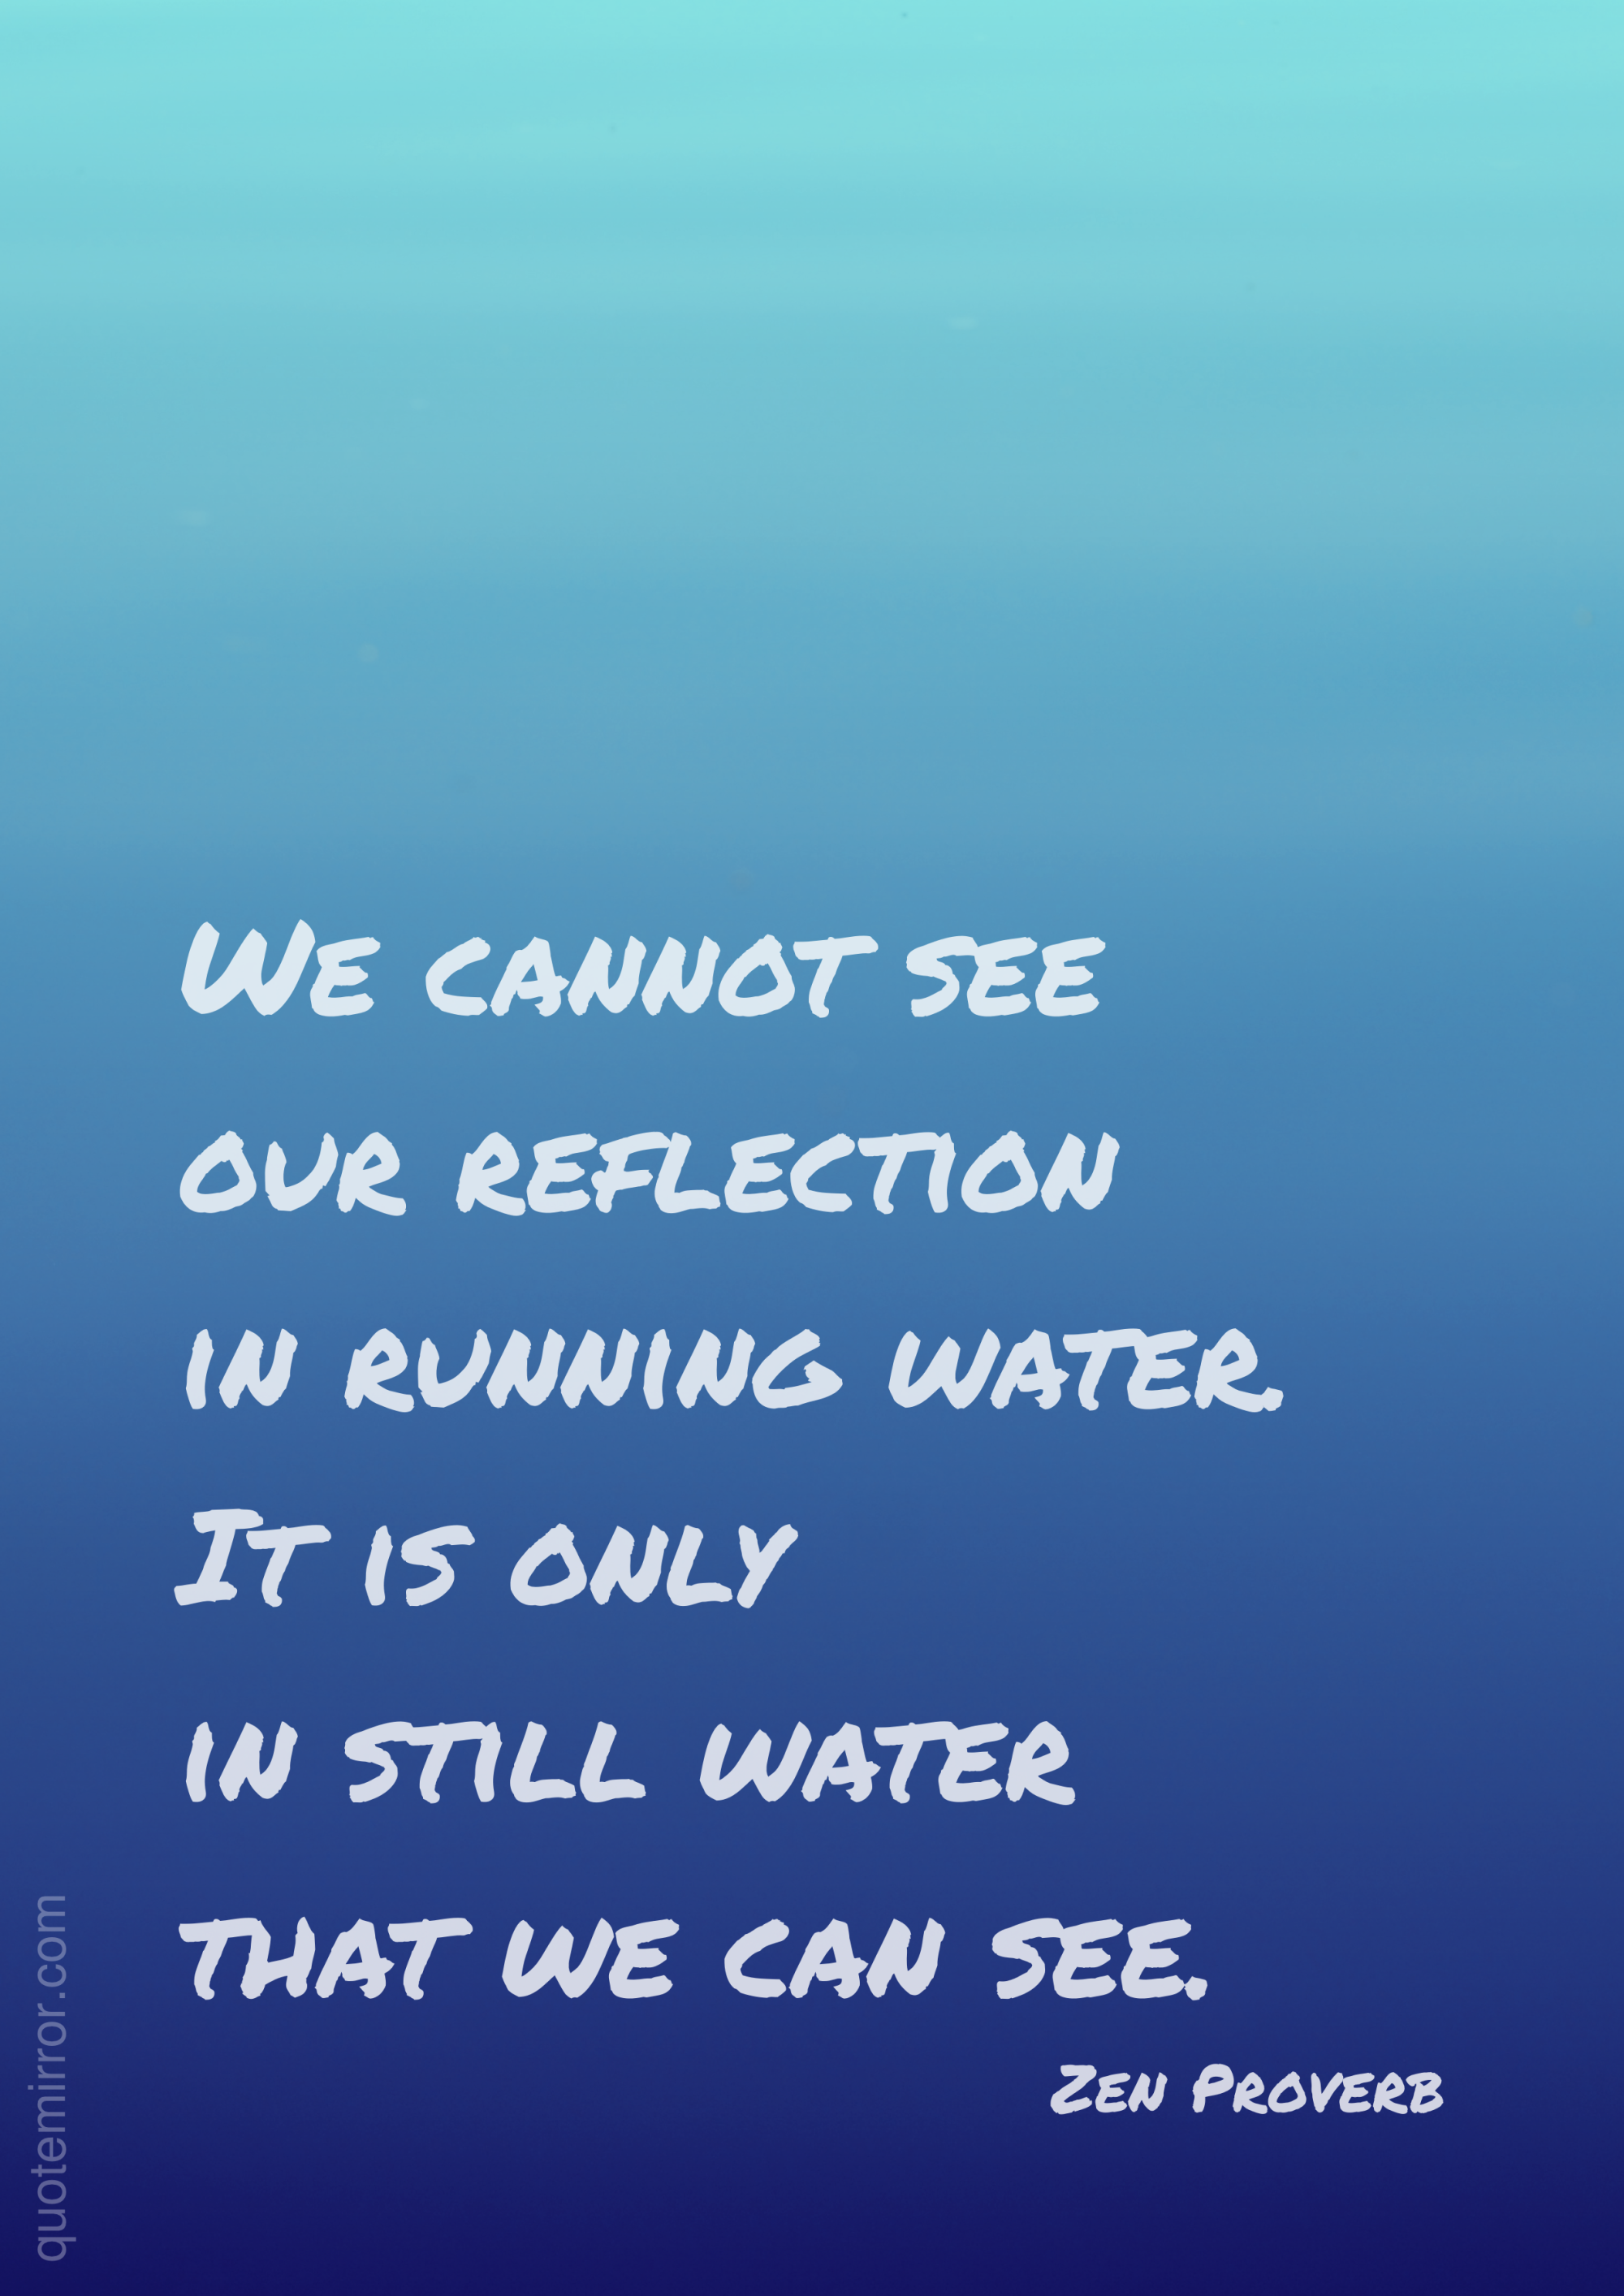 Our Reflection In Water Proverbs Pinterest Proverbs Water